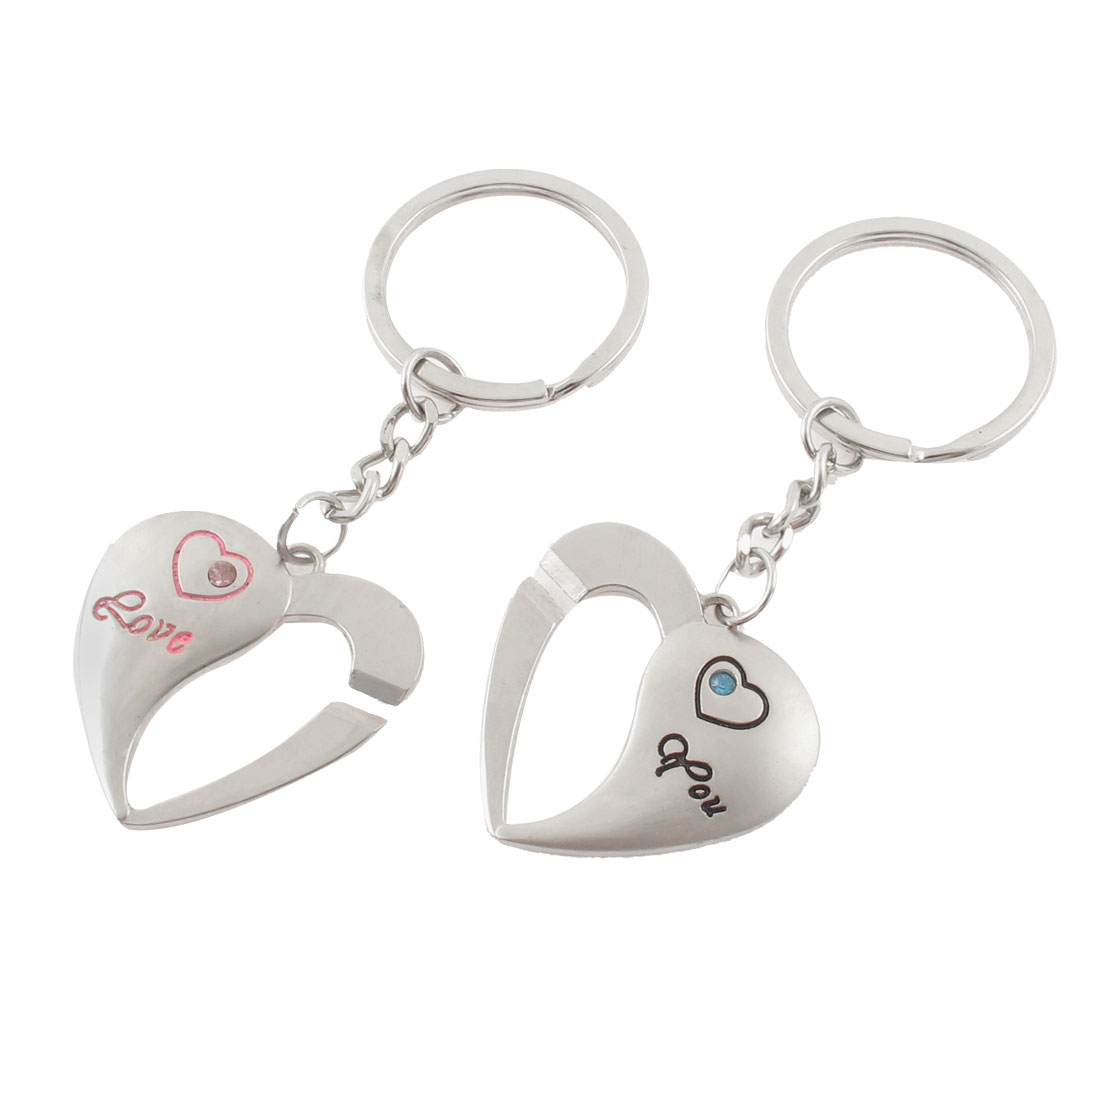 Heart Design Rhinestone Inlaid Dangling Pendant Couple Love Keychain Keyring 2 Pcs